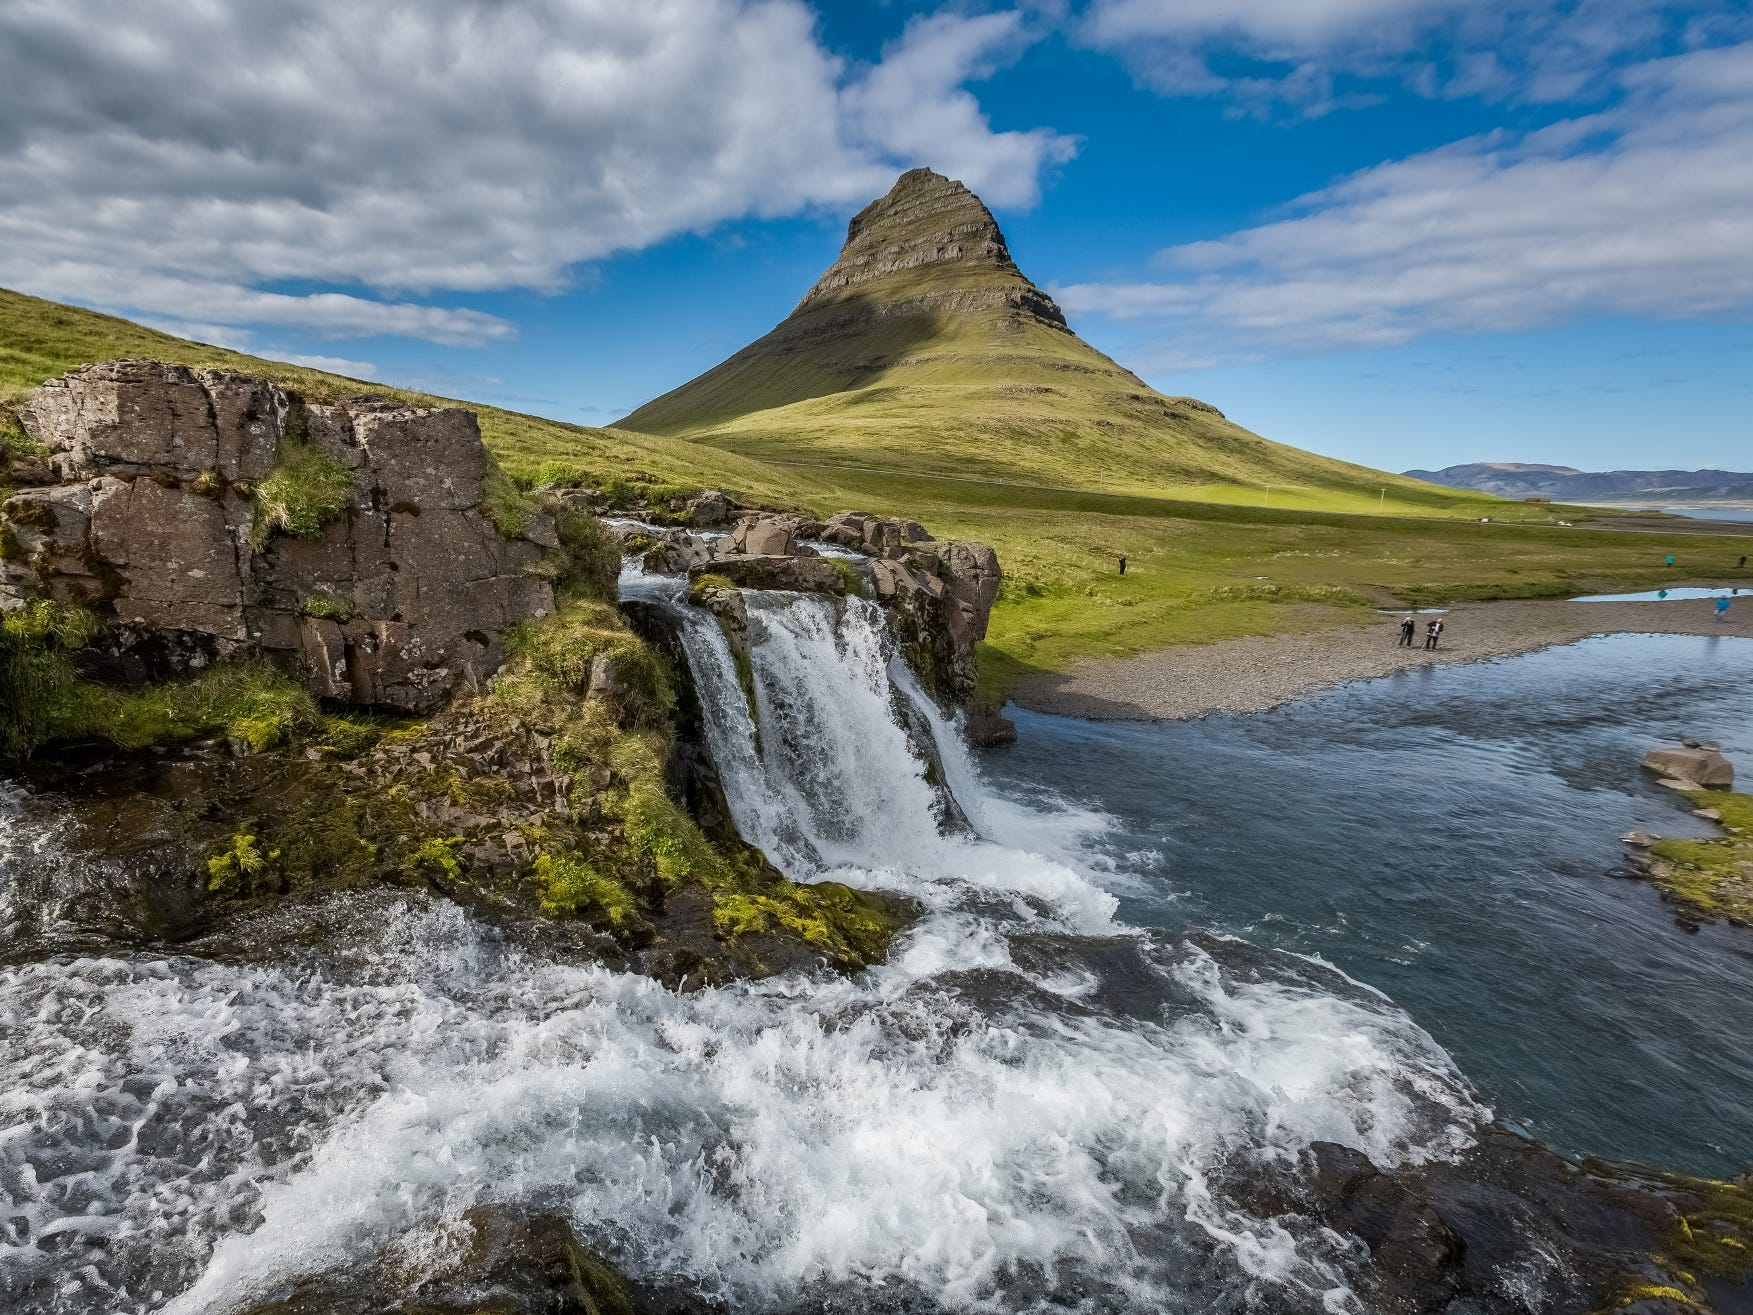 For nature lovers, it's hard to beat Iceland with its waterfalls, hot springs and glacier hikes.